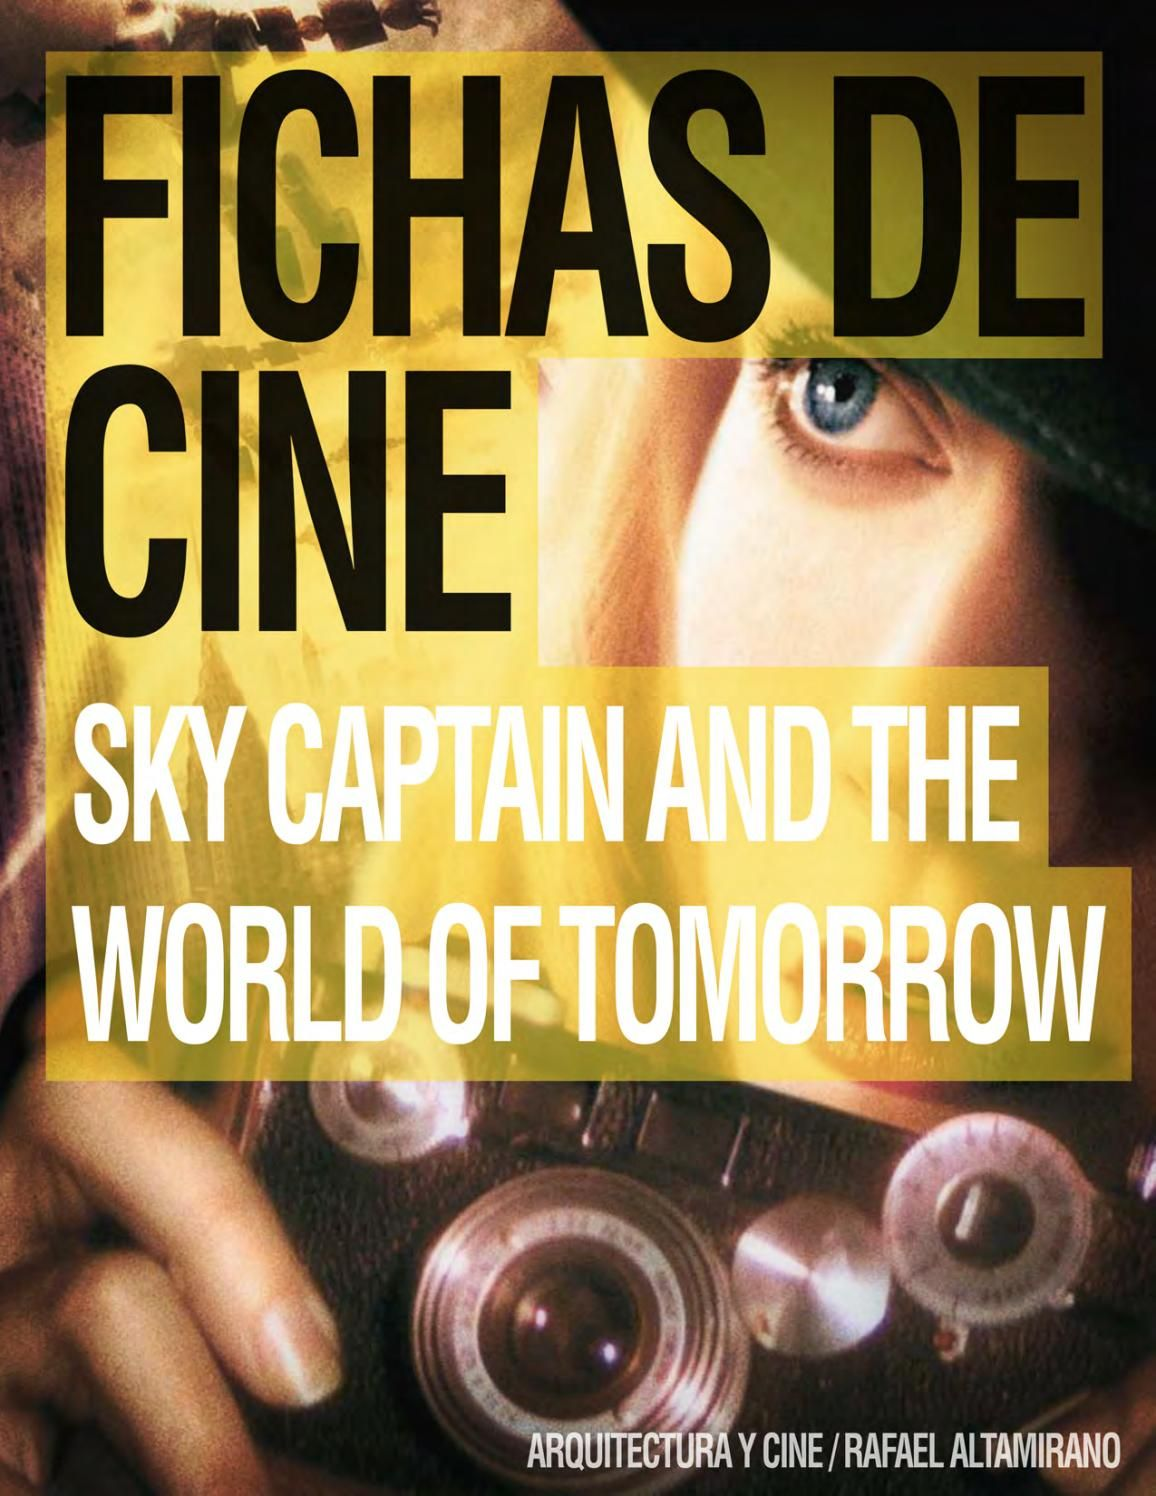 Fichas de Cine - Sky Captain and the World of Tomorrow